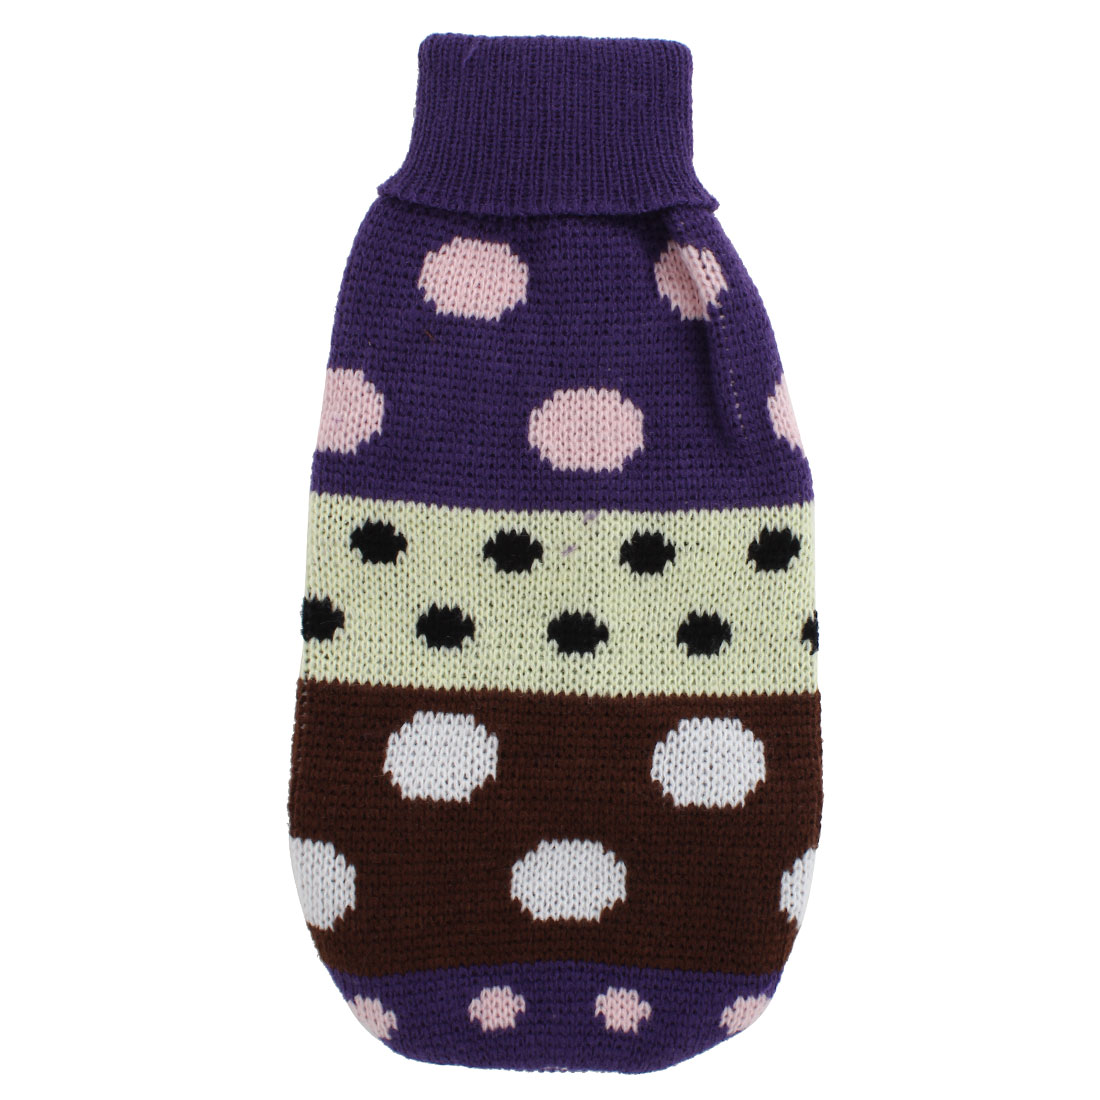 Pet Dog Puppy Ribbed Cuff Knitwear Turtleneck Warm Apparel Sweater Assorted Color Size XS